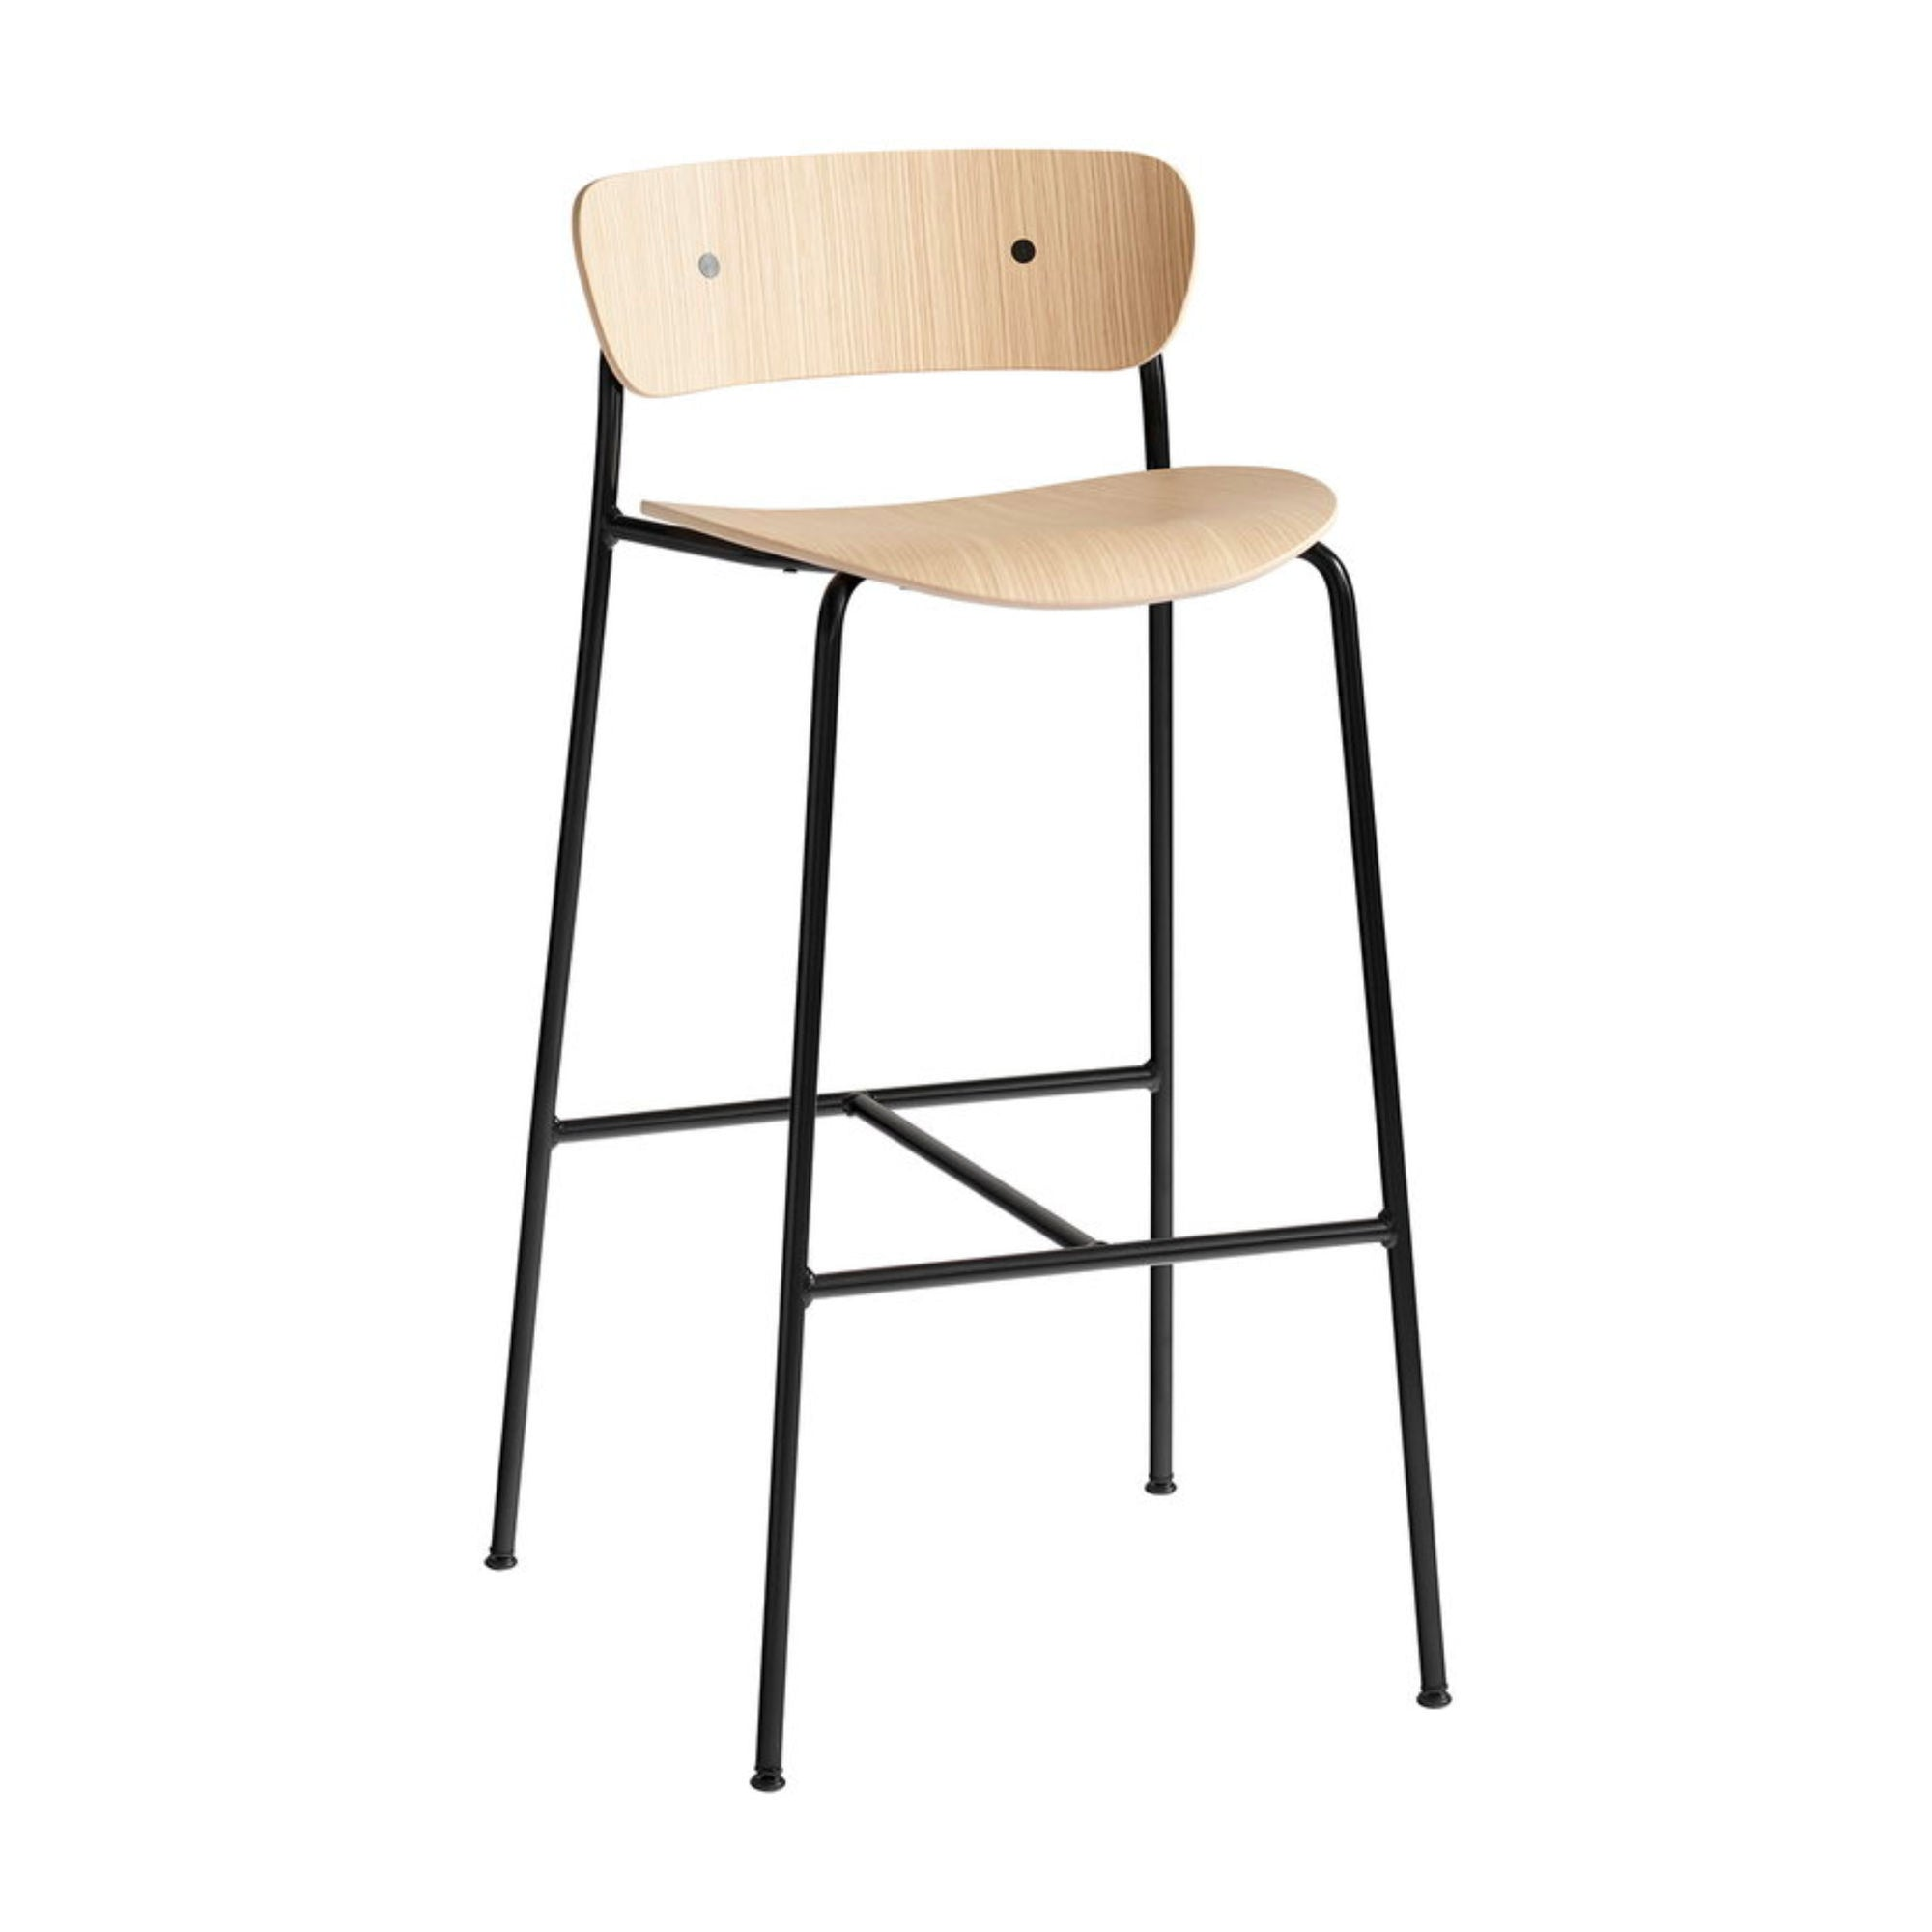 &Tradition Pavilion AV9 bar stool 75cm, oak - black legs